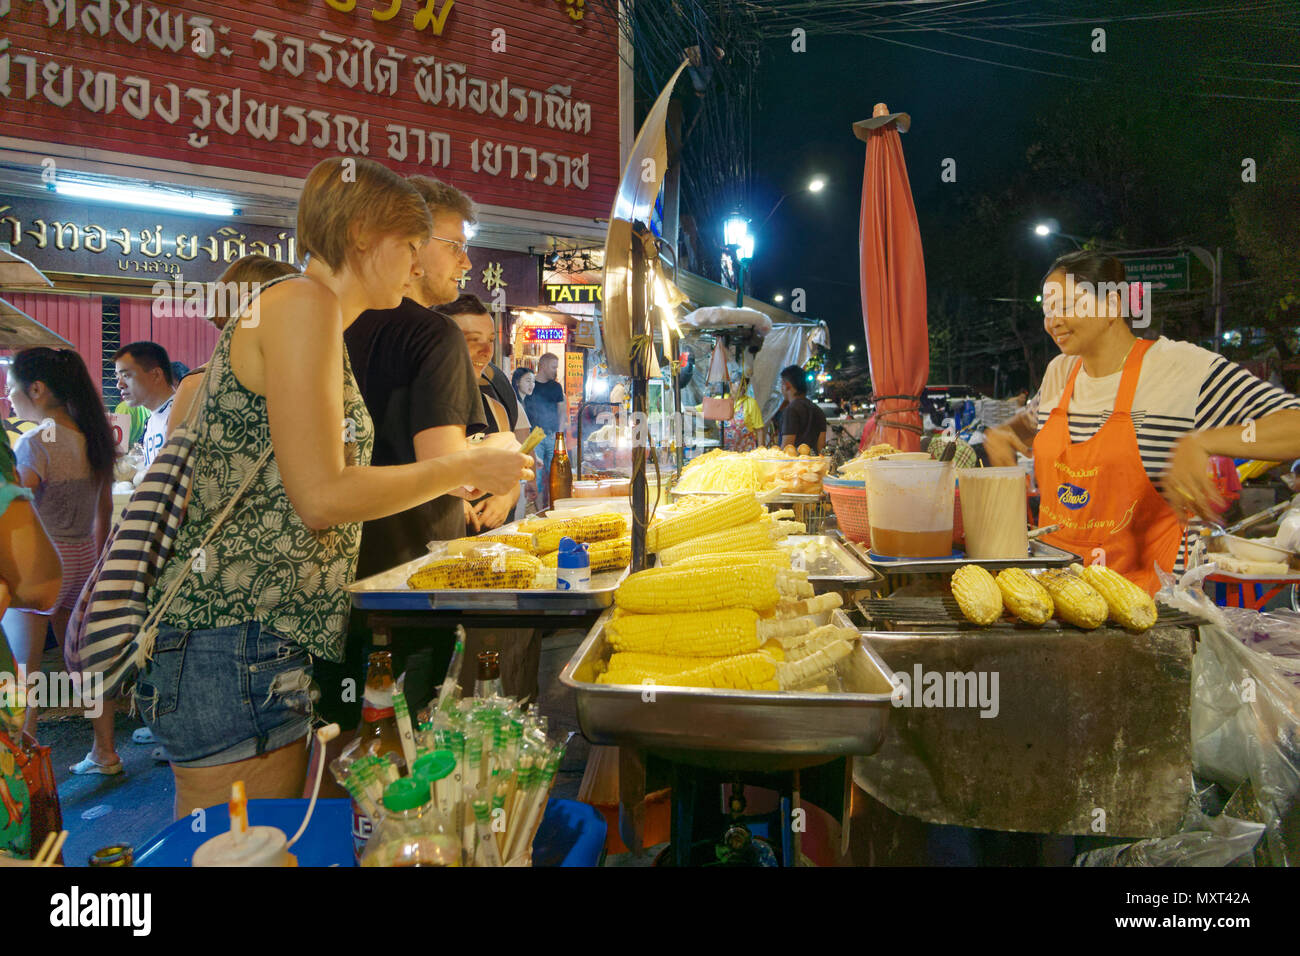 Khao San Road District, Street Food, Bangkok, Thailand, Stockbild